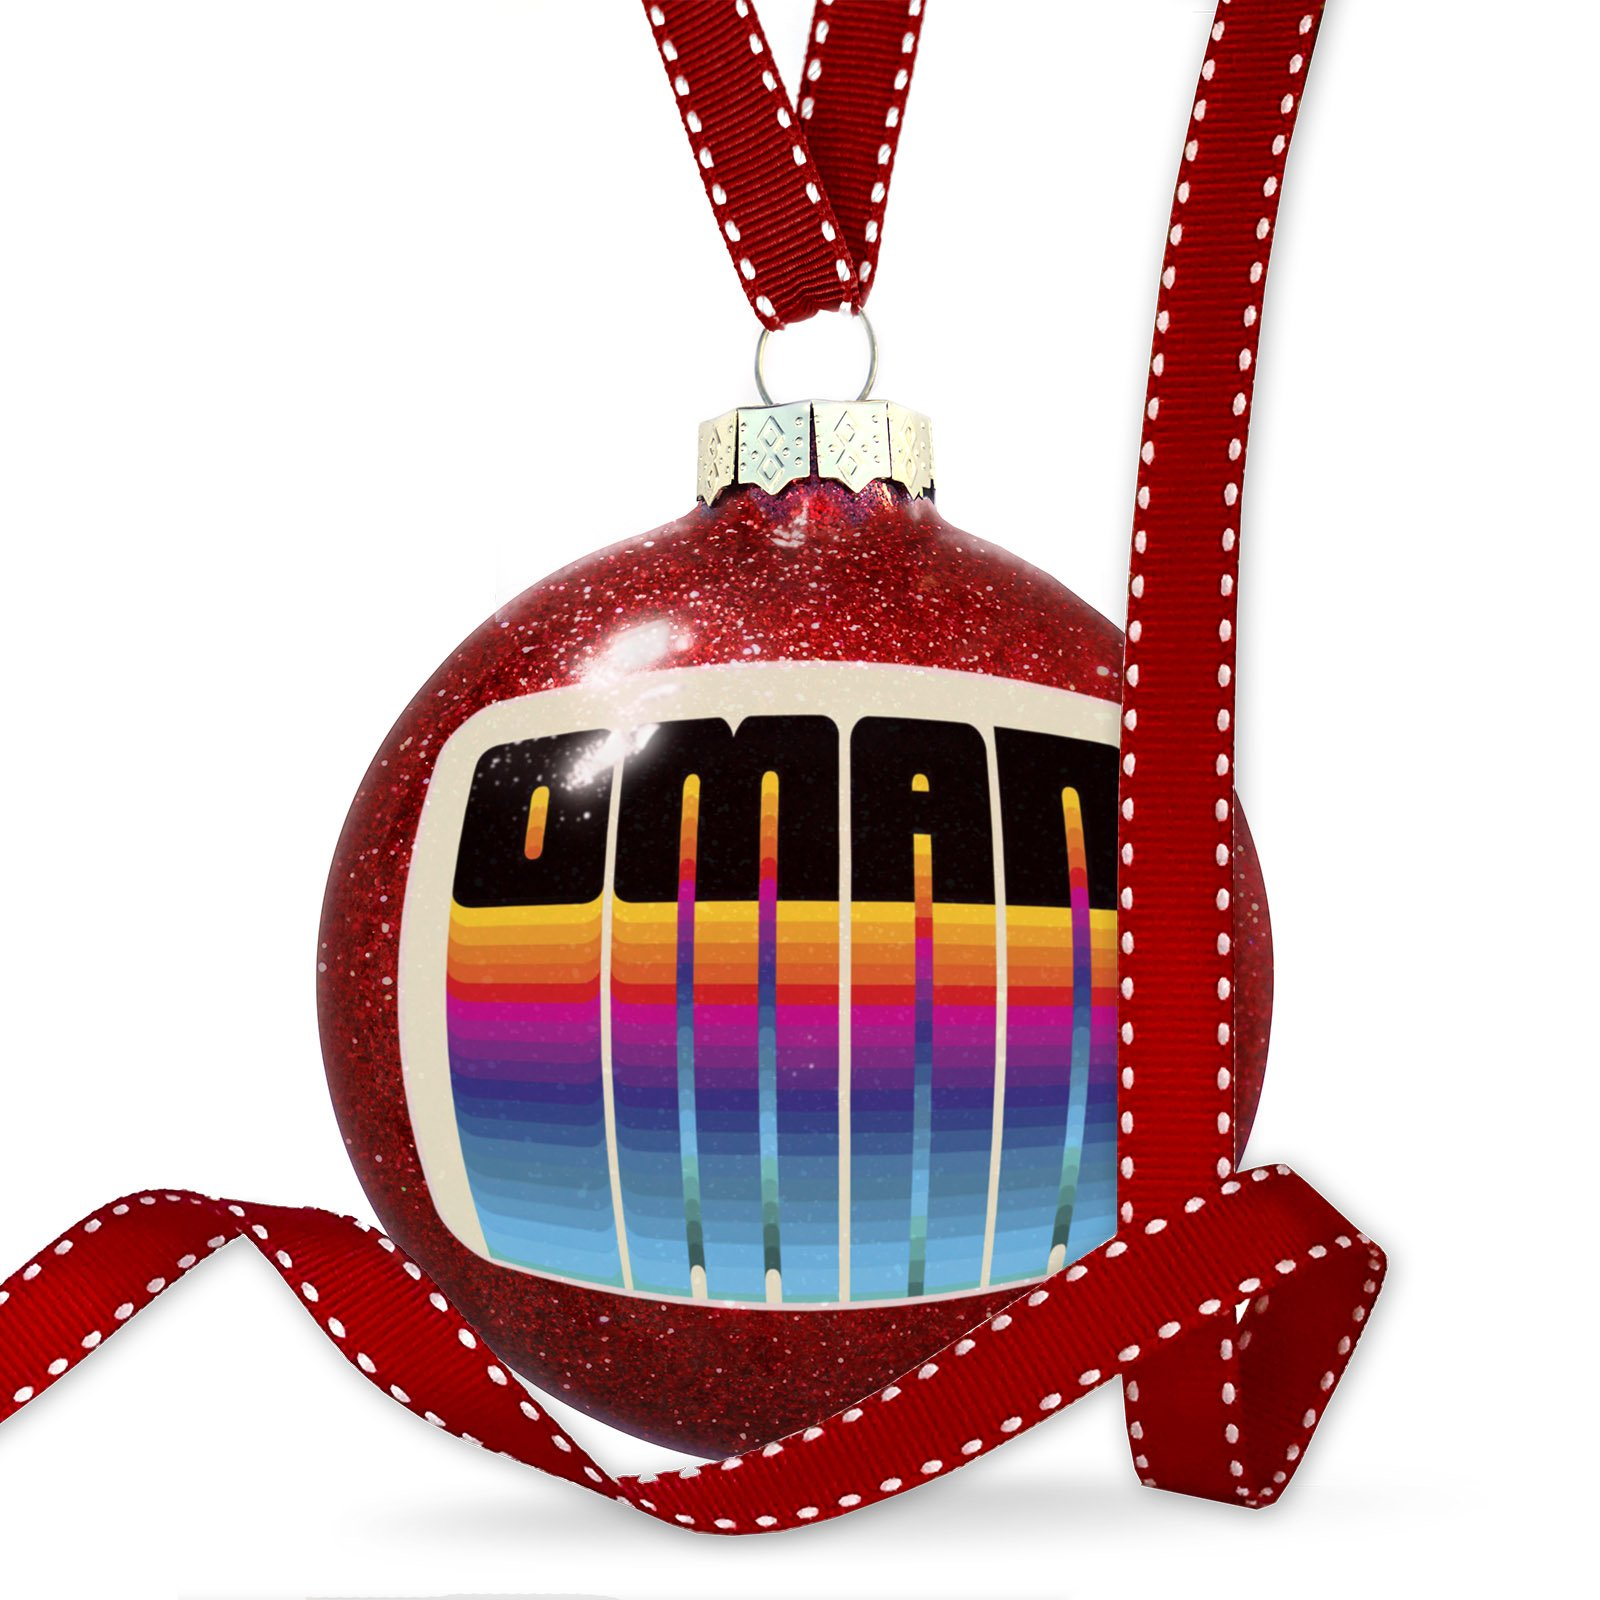 Christmas Decoration Retro Cites States Countries Oman Ornament by NEONBLOND (Image #1)